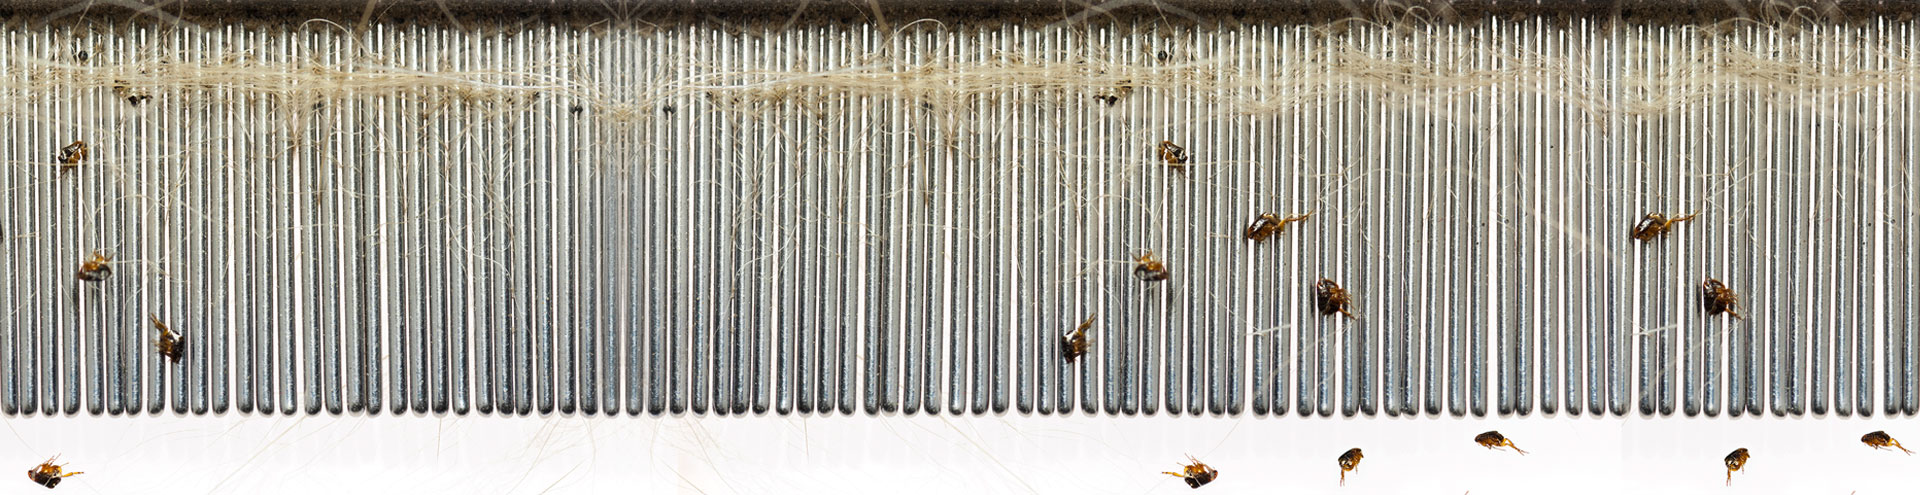 A group of fleas found on a comb after brushing a dog.